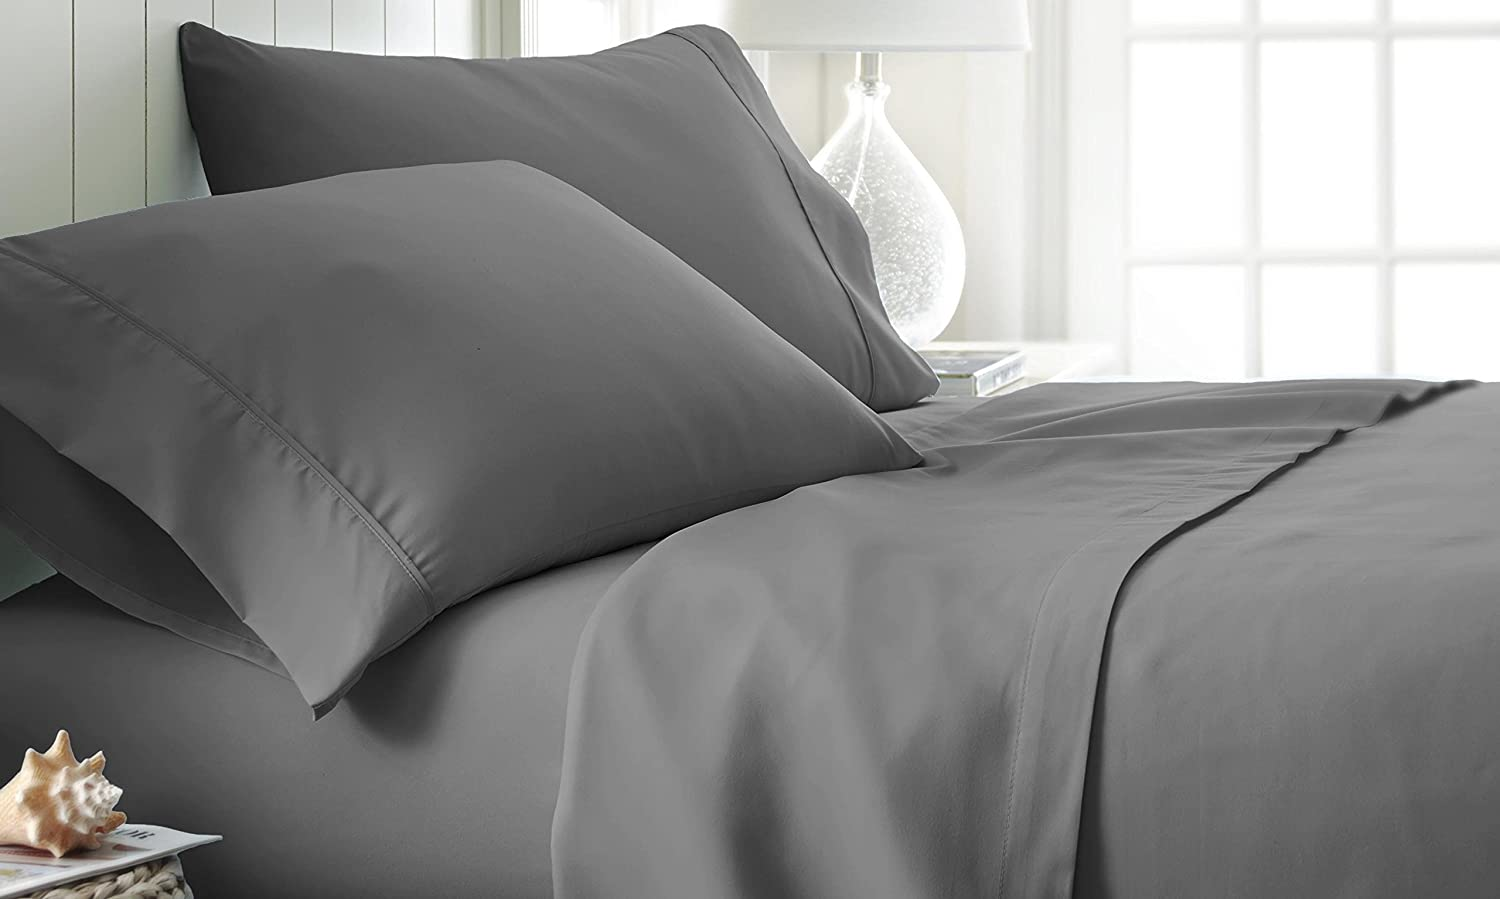 ienjoy Home Hotel Collection Luxury Soft Brushed Bed Sheet Set, Hypoallergenic, Deep Pocket, King, Gray